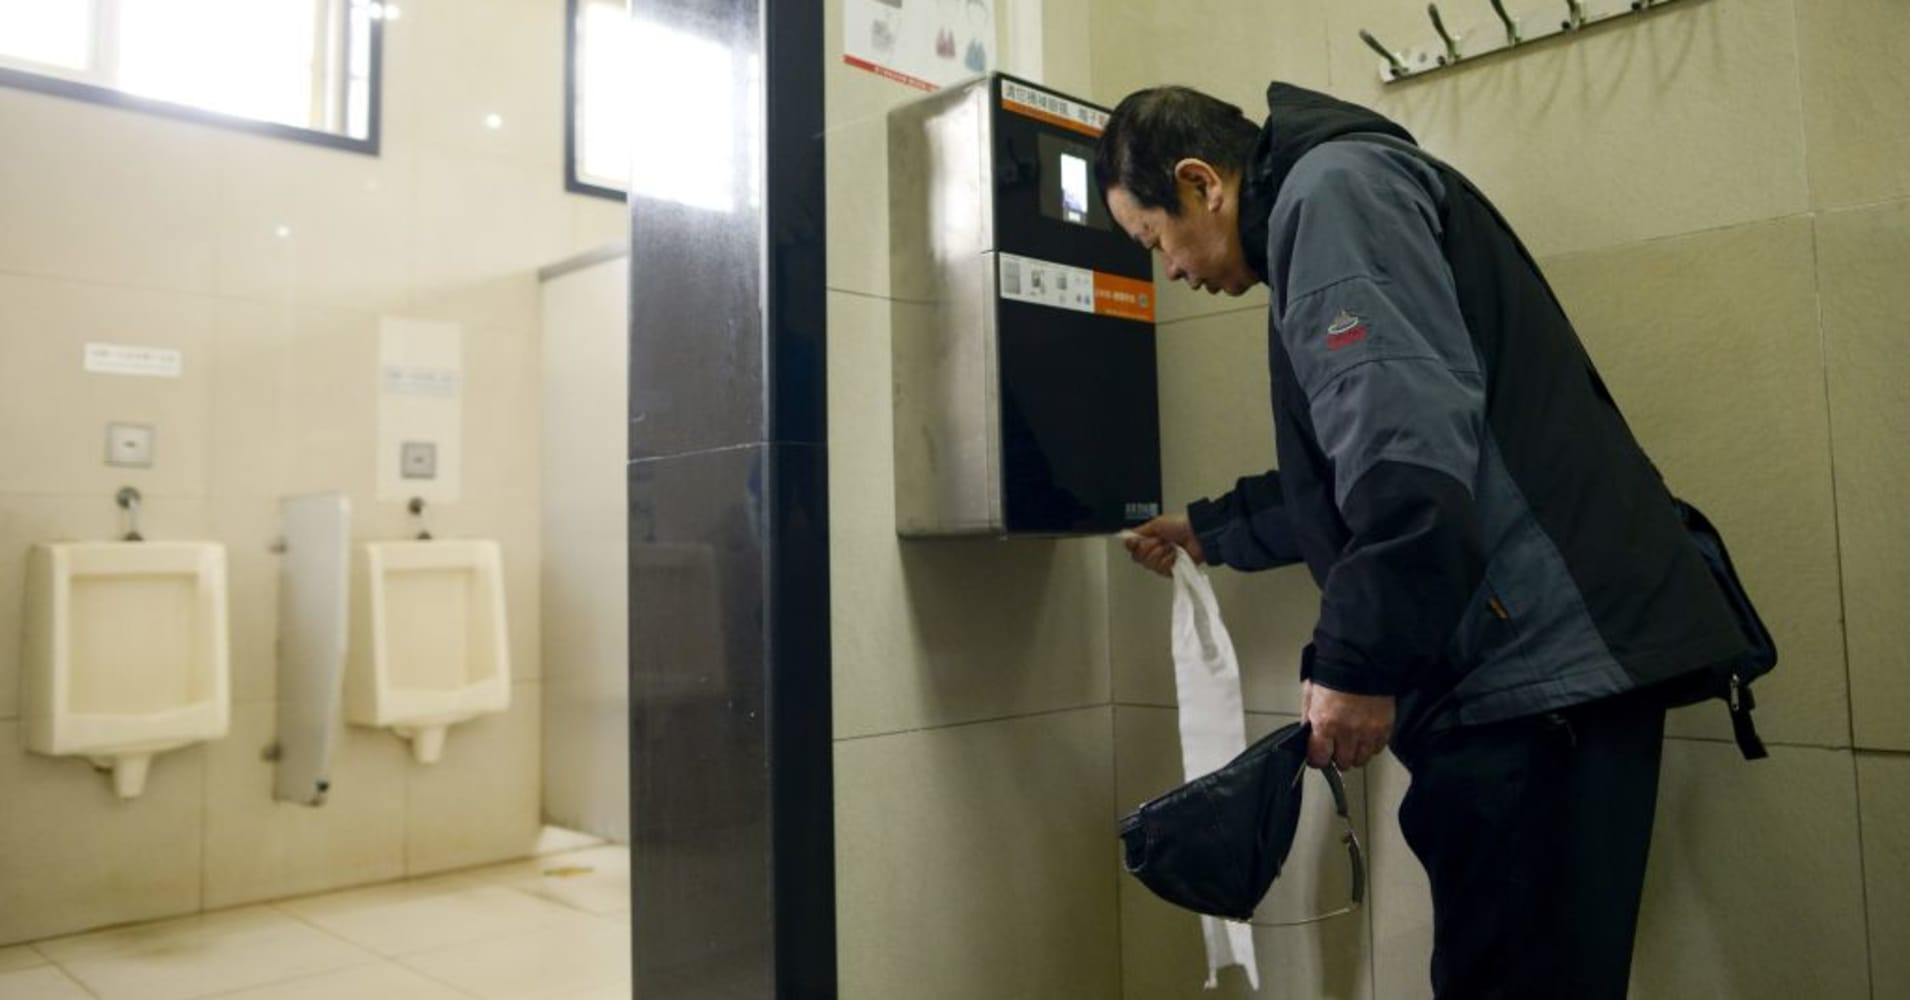 'Toilet revolution': China has its sight set on reforming its bathrooms